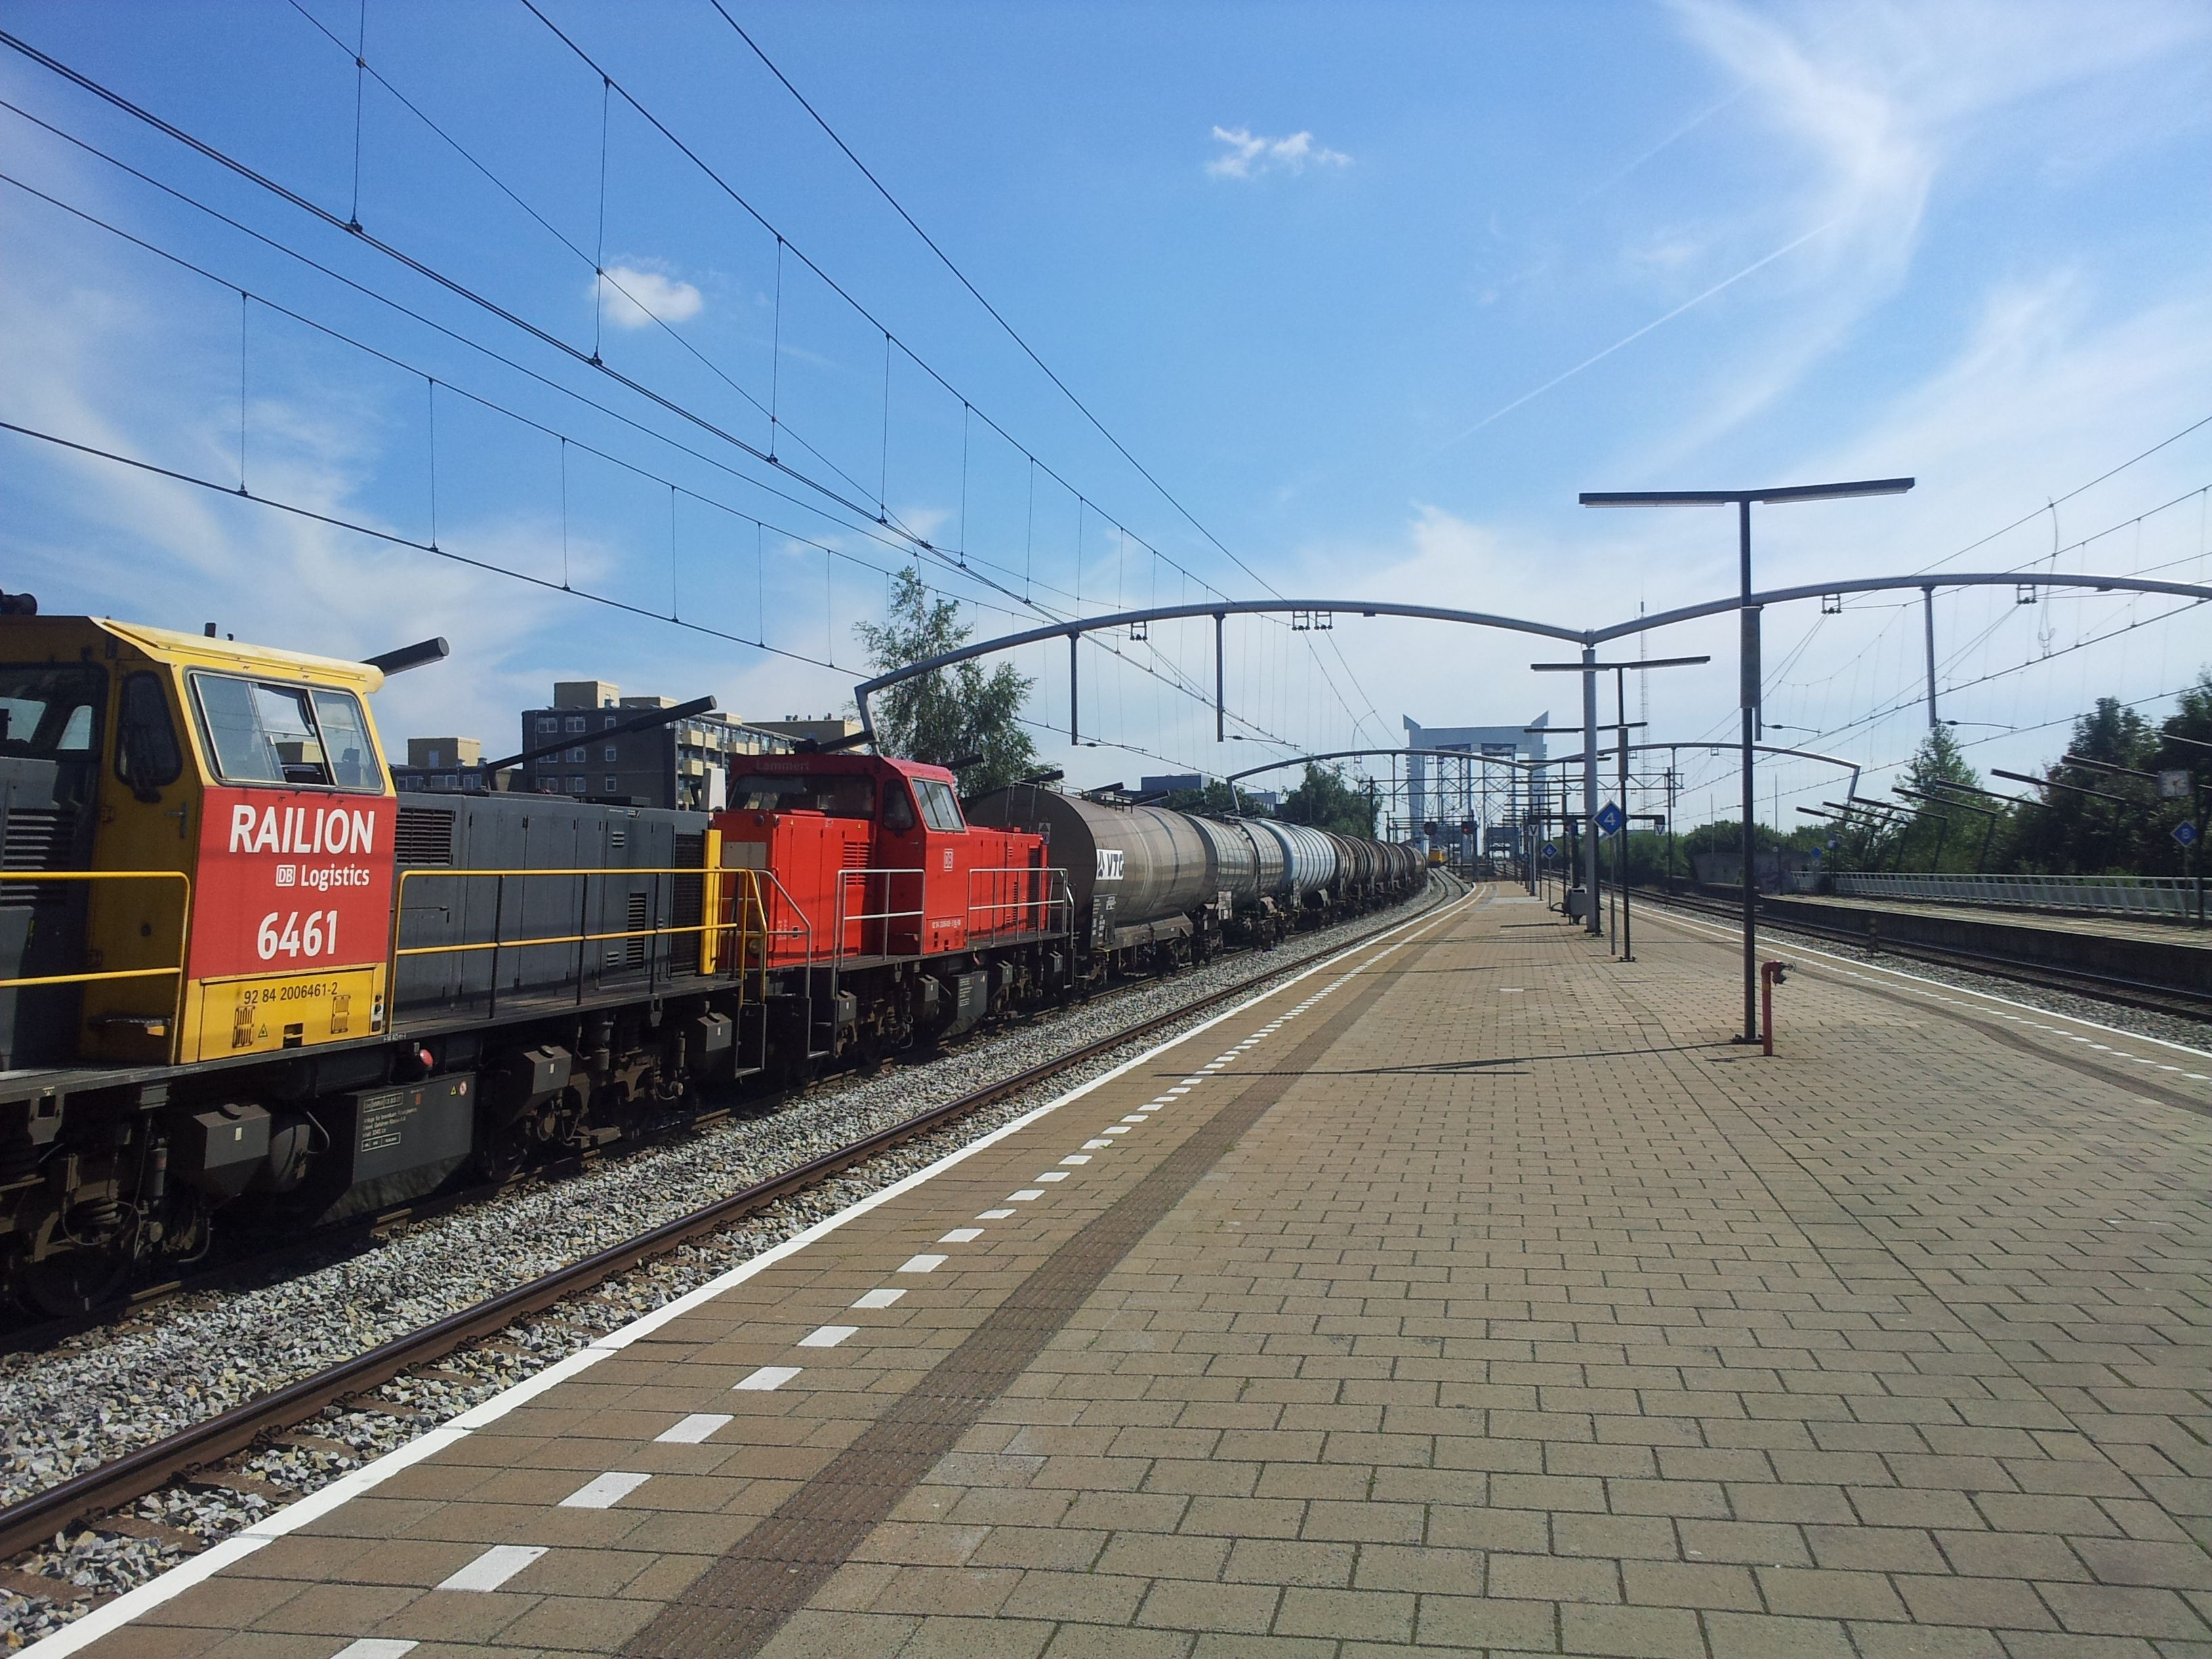 Train at railway station Zwijndrecht Netherlands